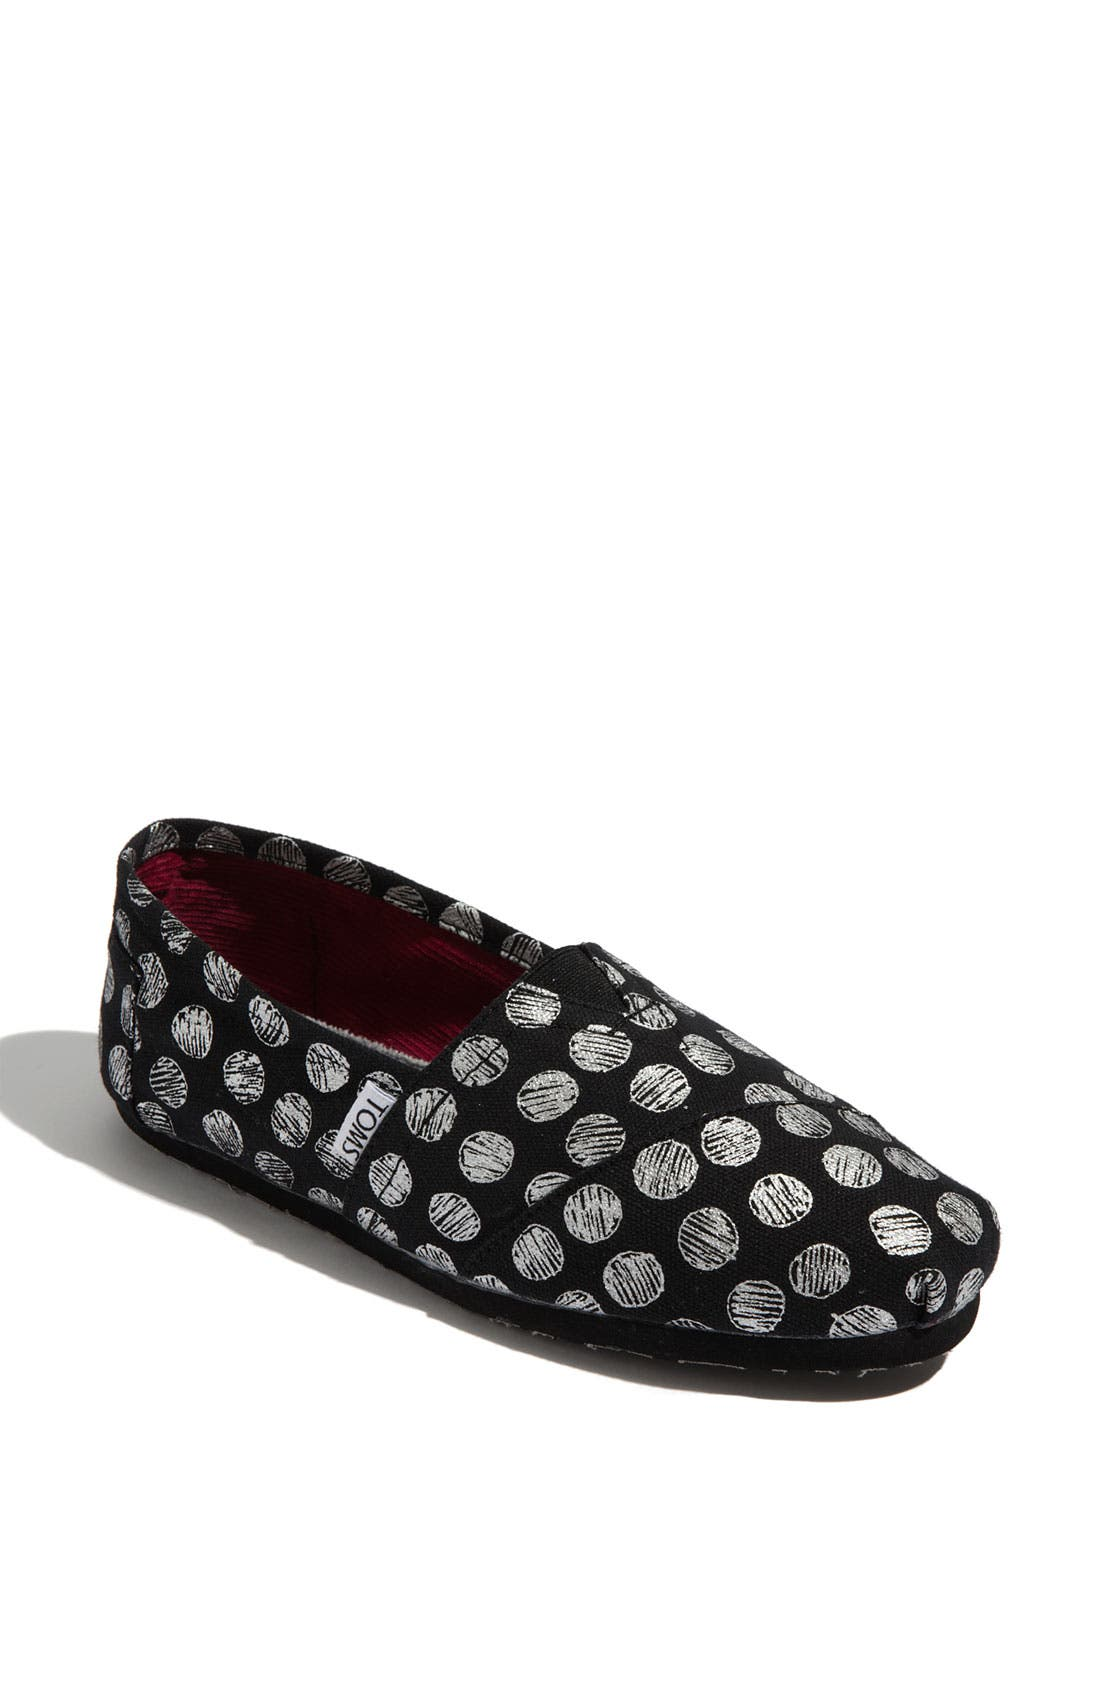 Alternate Image 1 Selected - TOMS 'Classic - Hand Drawn Dots' Slip-On (Women)